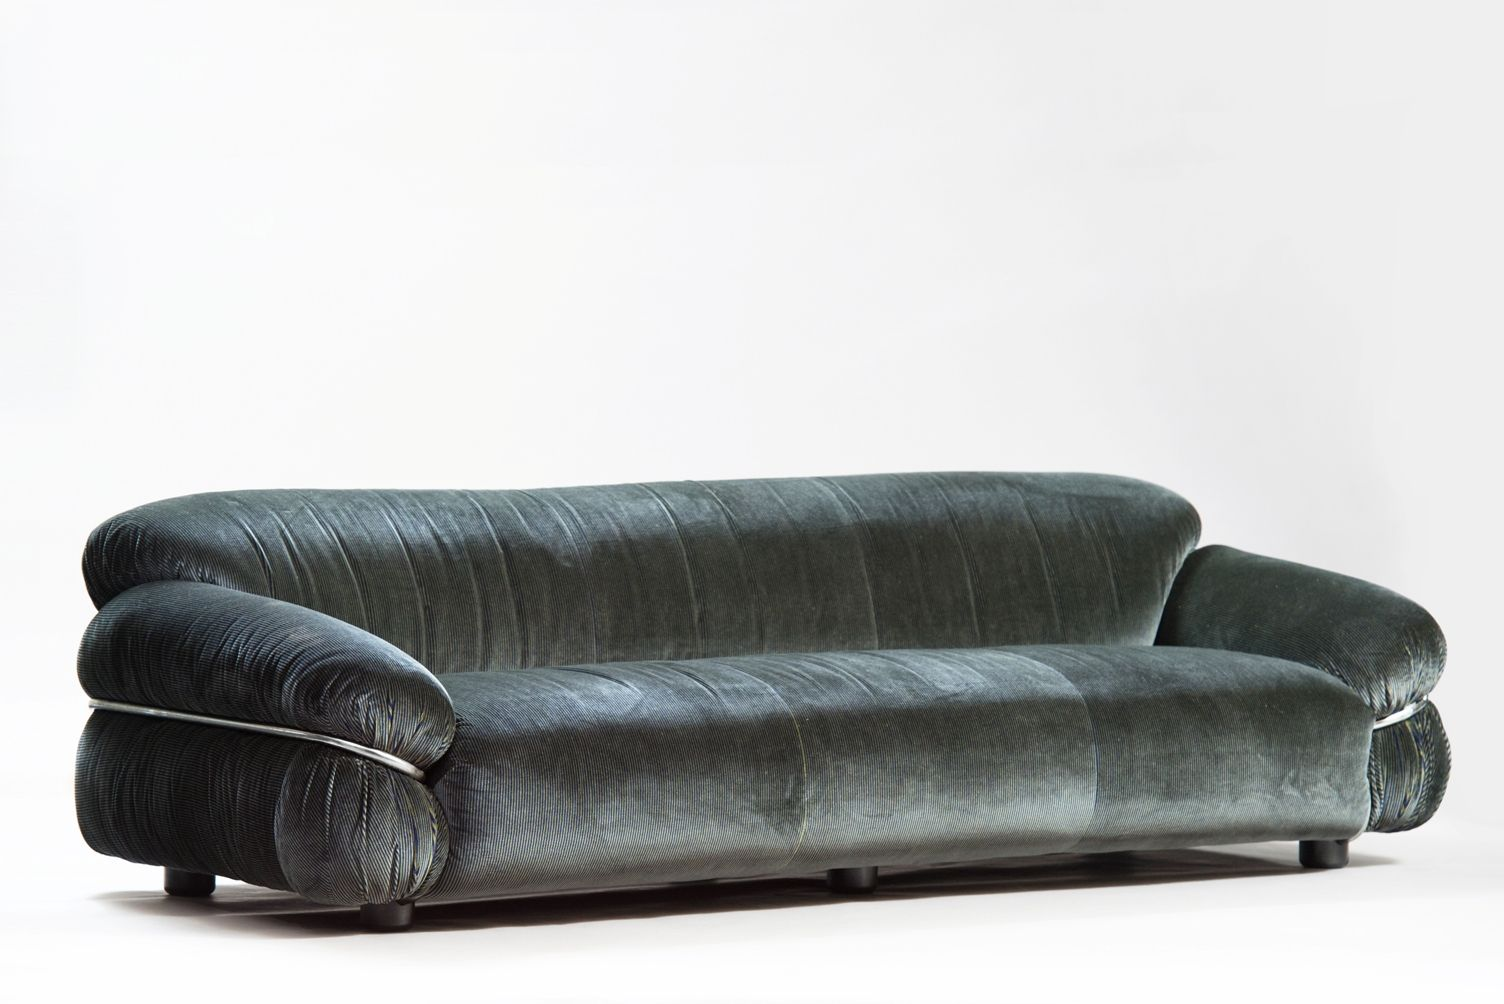 italienisches sesann sofa von gianfranco frattini f r cassina 1970er bei pamono kaufen. Black Bedroom Furniture Sets. Home Design Ideas